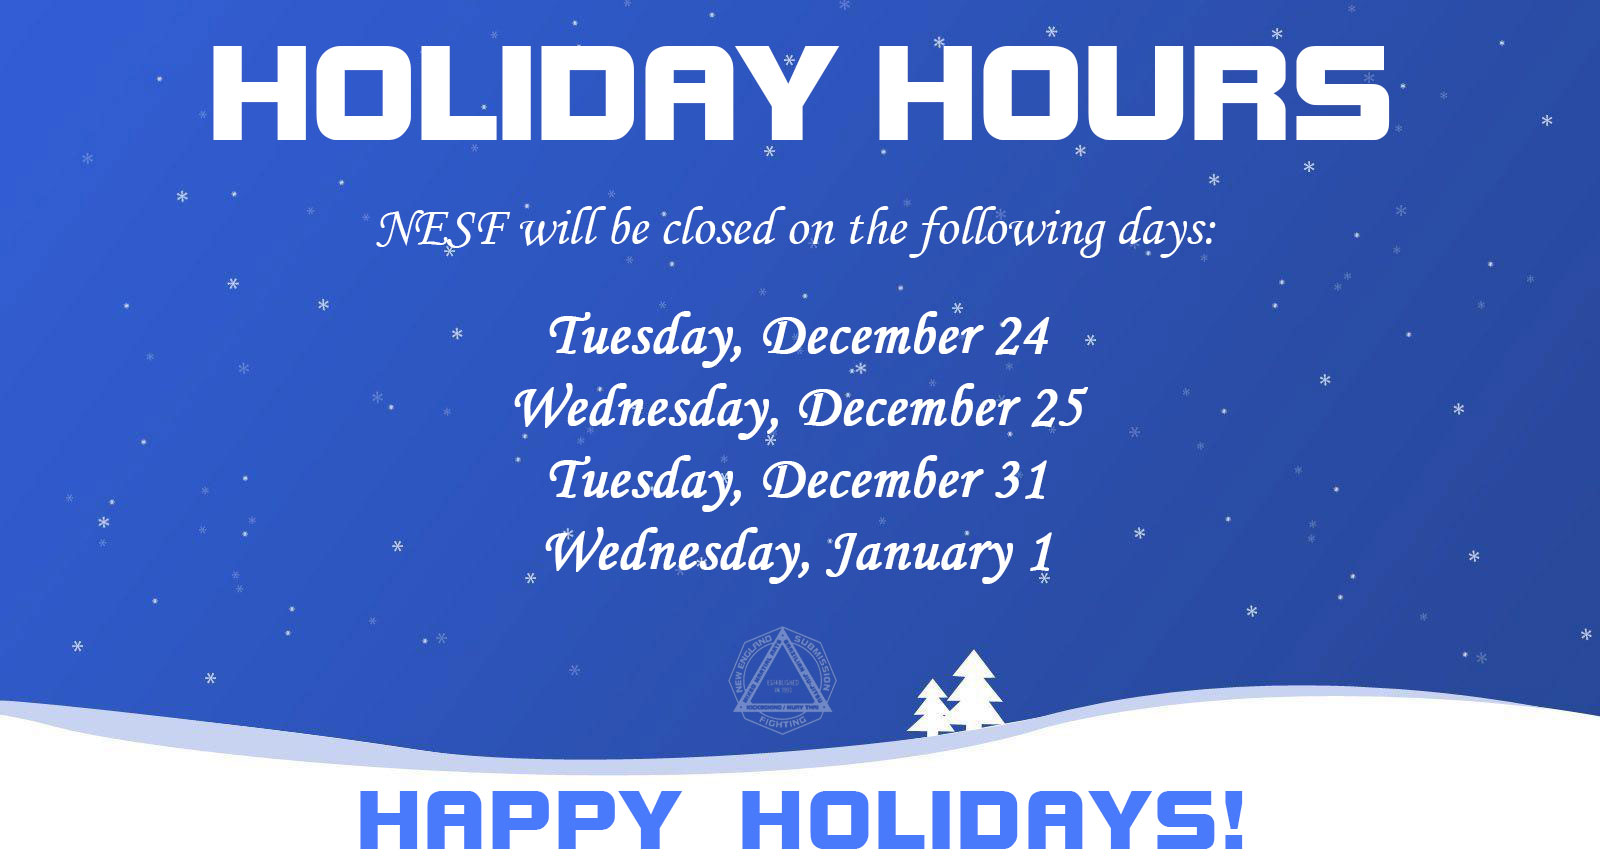 NESF holiday-hours